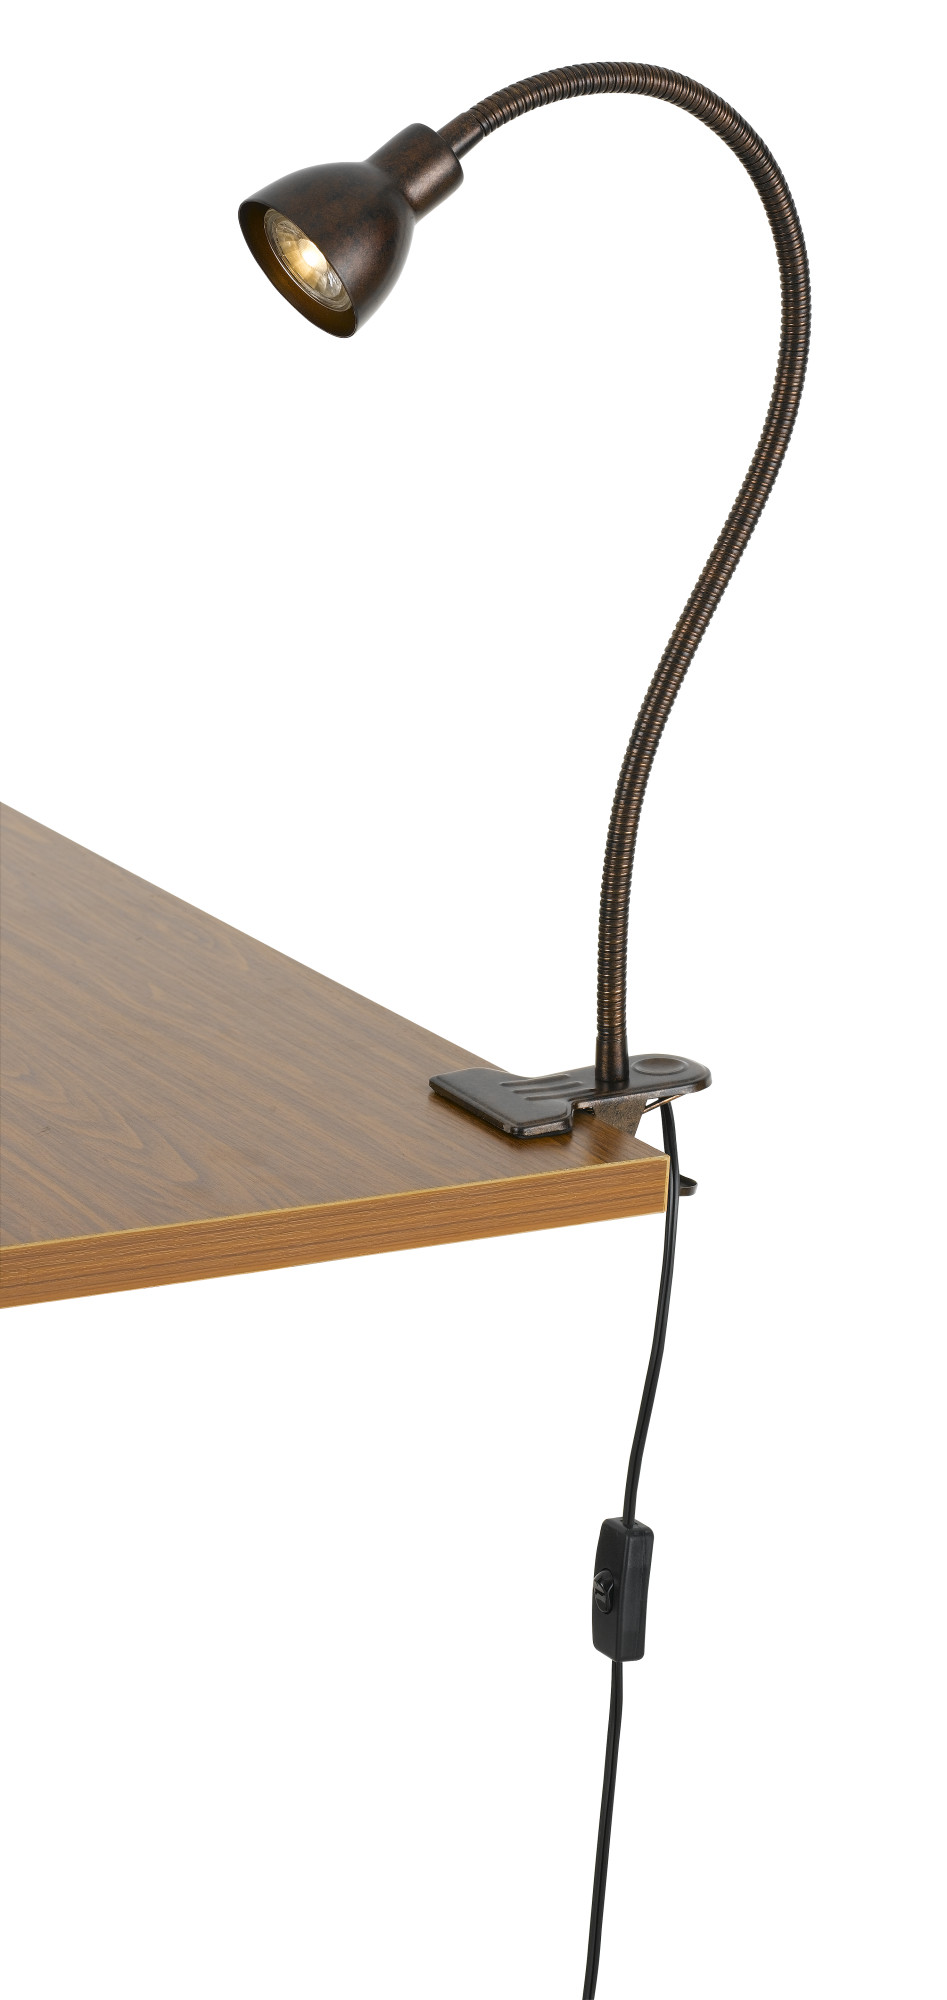 Ordinaire Cal Lighting Adjustable Clamp On Desk Lamp   Walmart.com